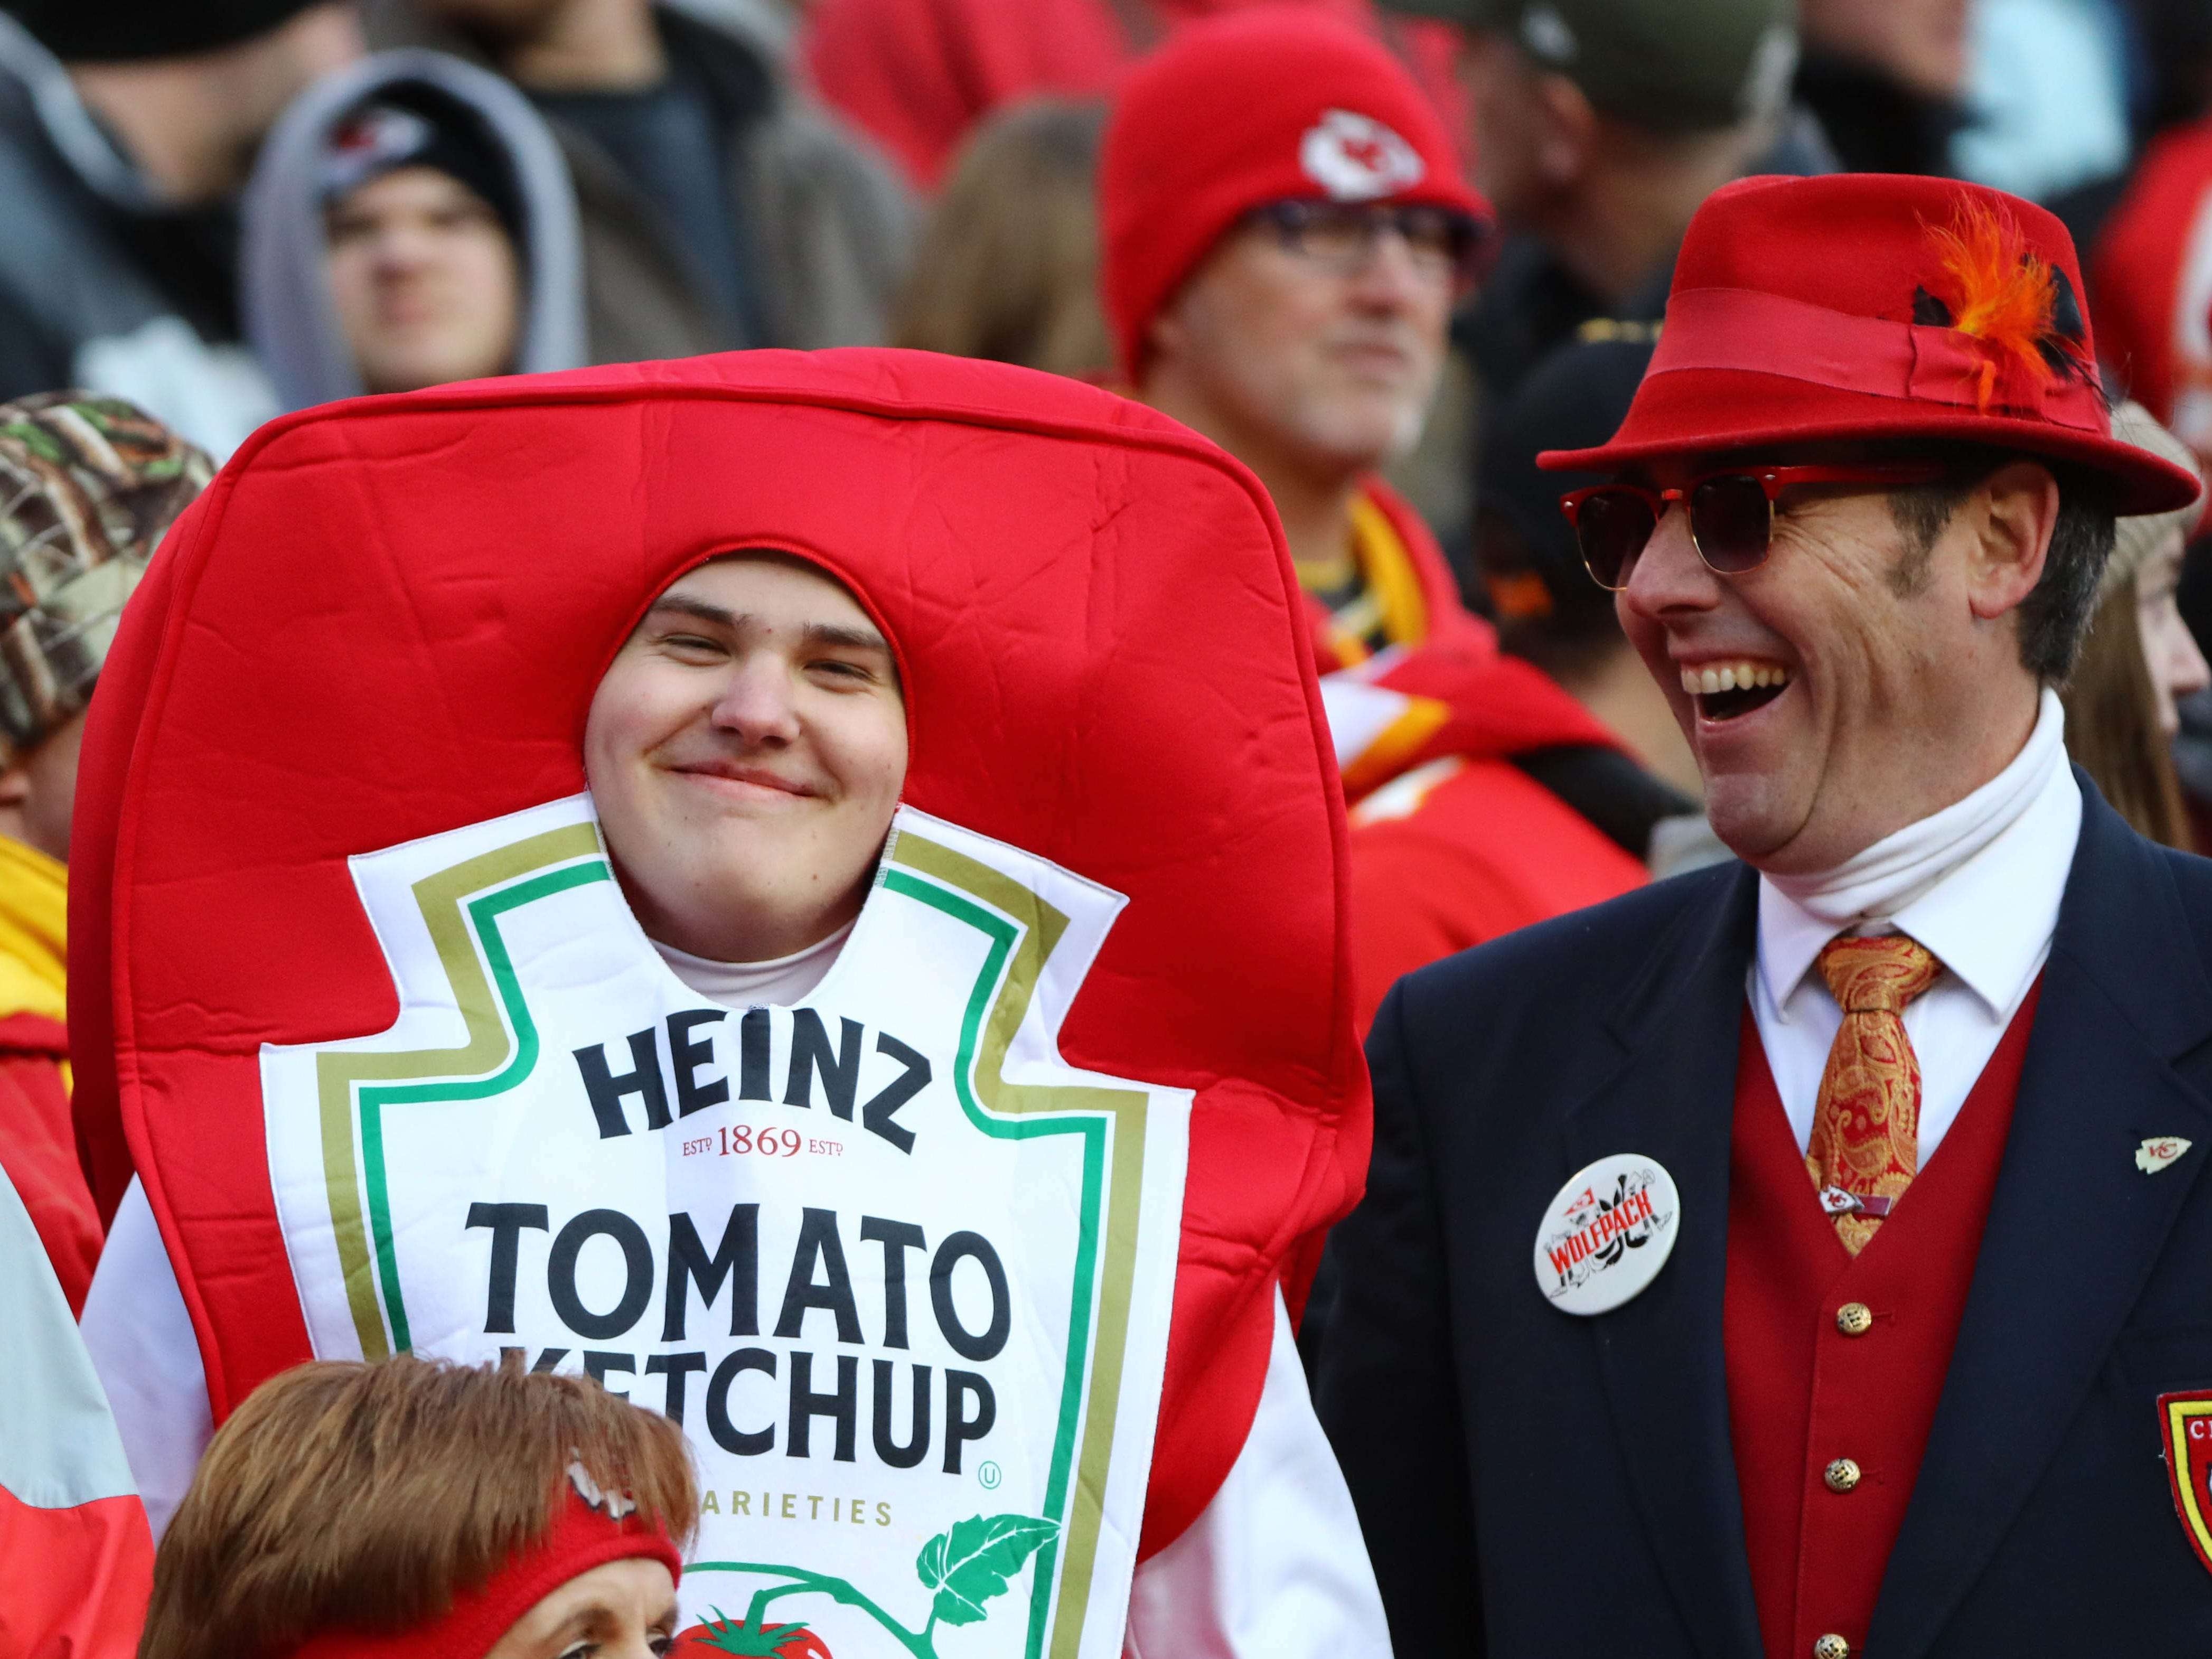 Kansas City Chiefs fans during the second half against the Baltimore Ravens at Arrowhead Stadium.